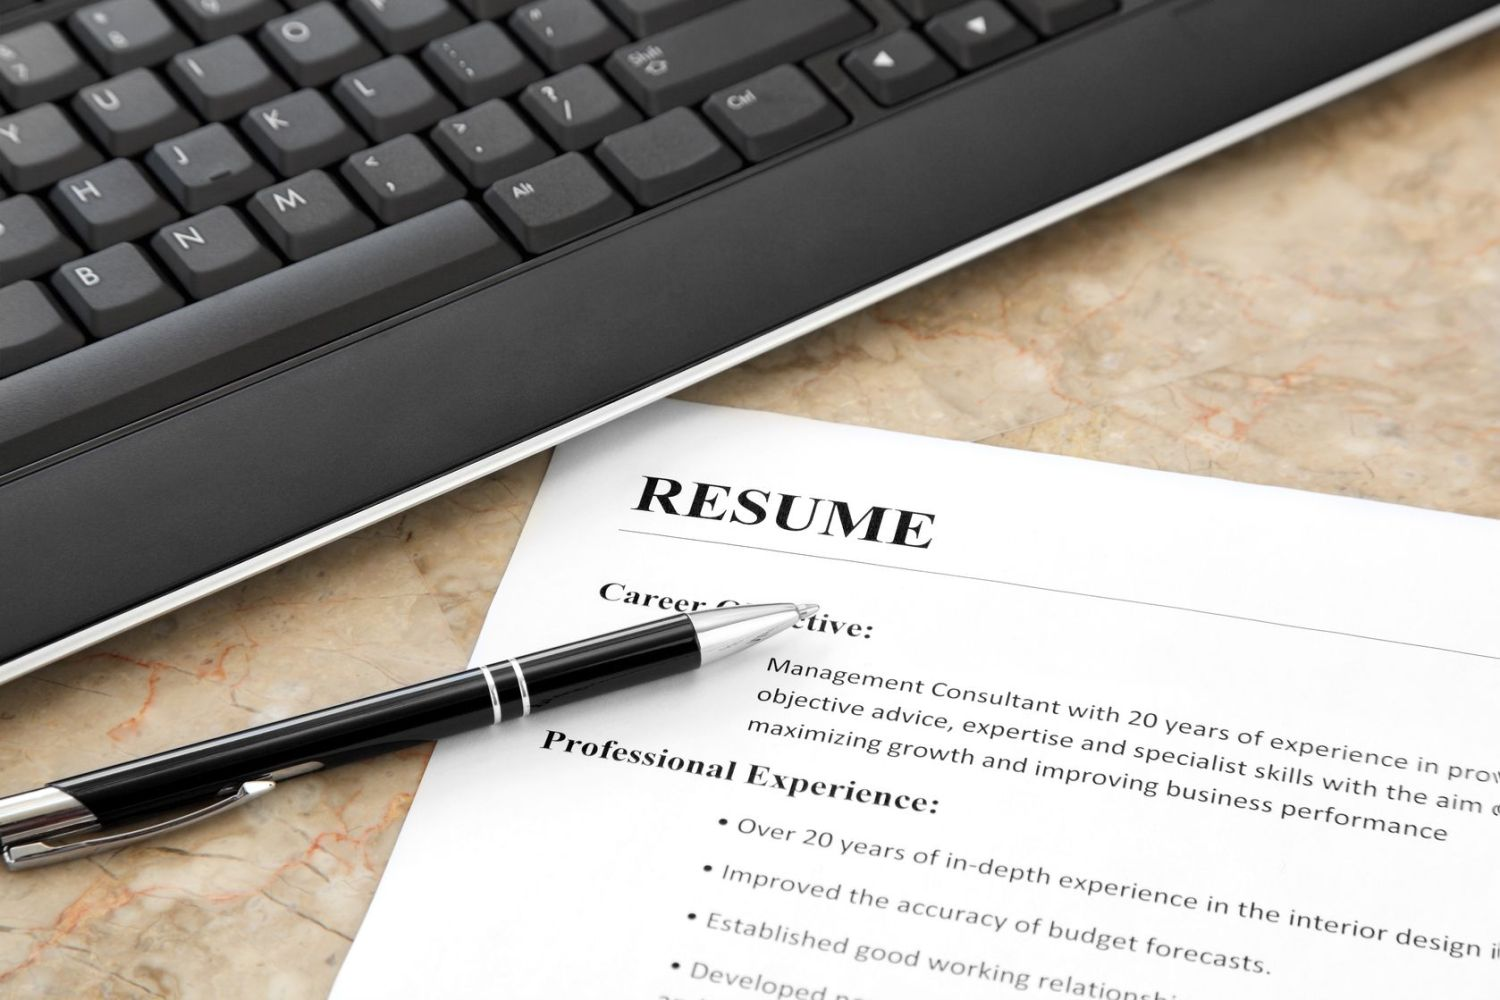 14255959 – resume with pen and keyboard on the table